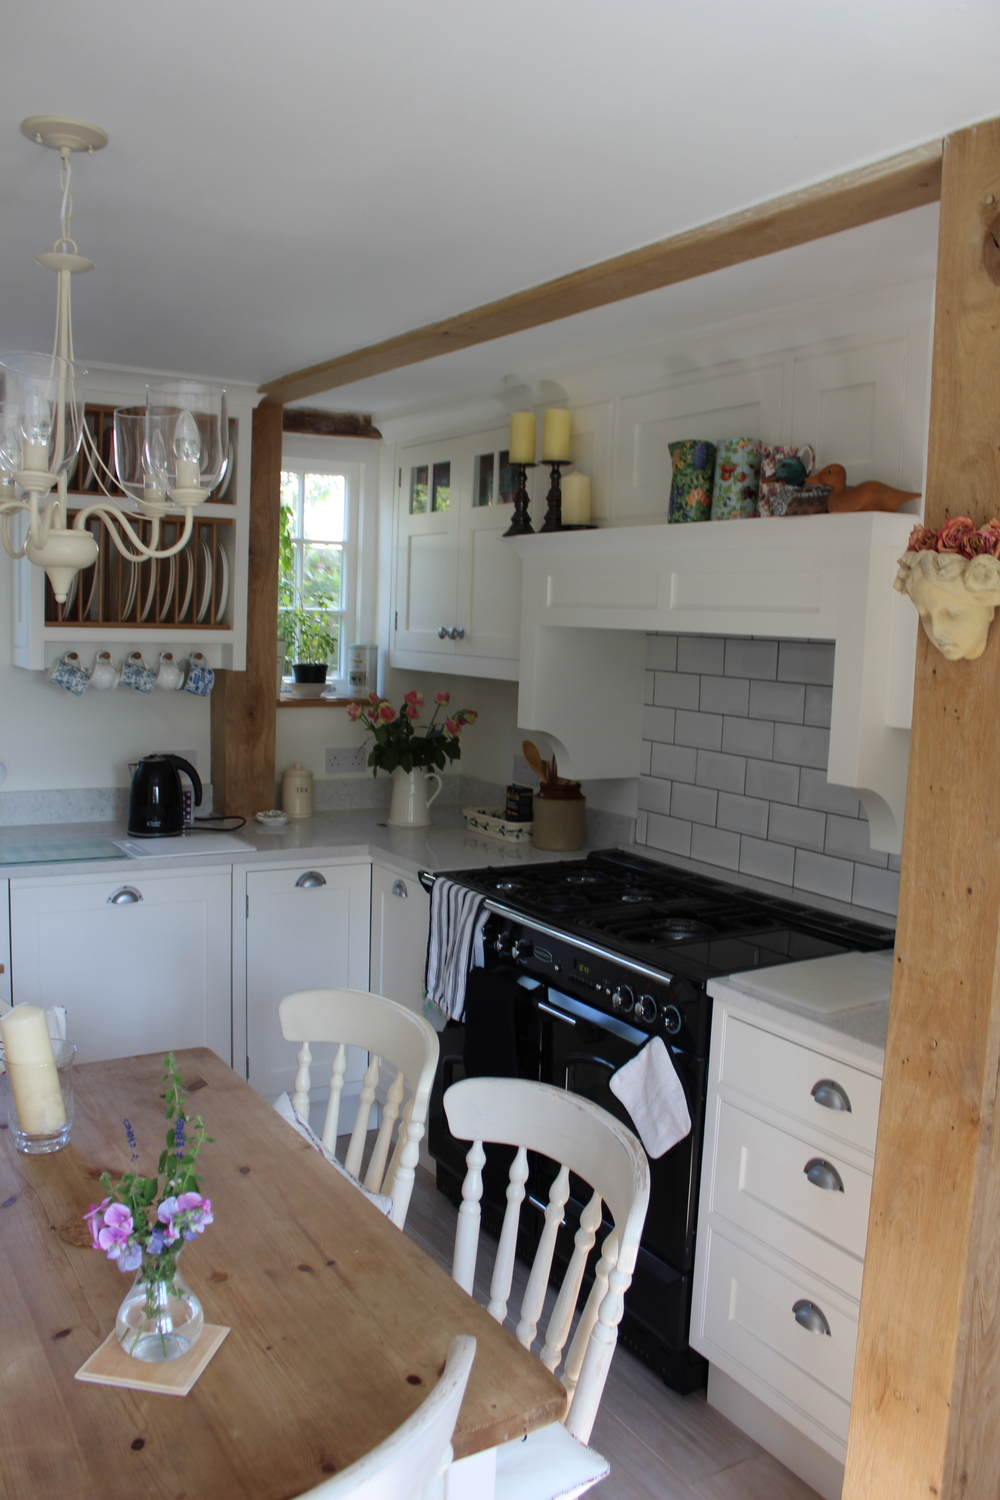 Jasmine Cottage   A classical Shaker-style kitchen.  The beauty of Jasmine Cottage's kitchen is where tradition and 'country' meet chic and elegant. An English Shaker-style, painted off-white kitchen, creates the illusion of space within the cottage's low ceilings and oak beams; and, the interiors of the cupboards and bespoke plate-rack are finished in matching English oak.   Cabinetry - finished in Farrow & Ball's Pointing: £11500 installed.    Worktops - stone: £2500 approx. installed.    Additions: magic corners, Villroy & Bock double sink, stainless steel pull-out recycling units: £1500 approx. installed.